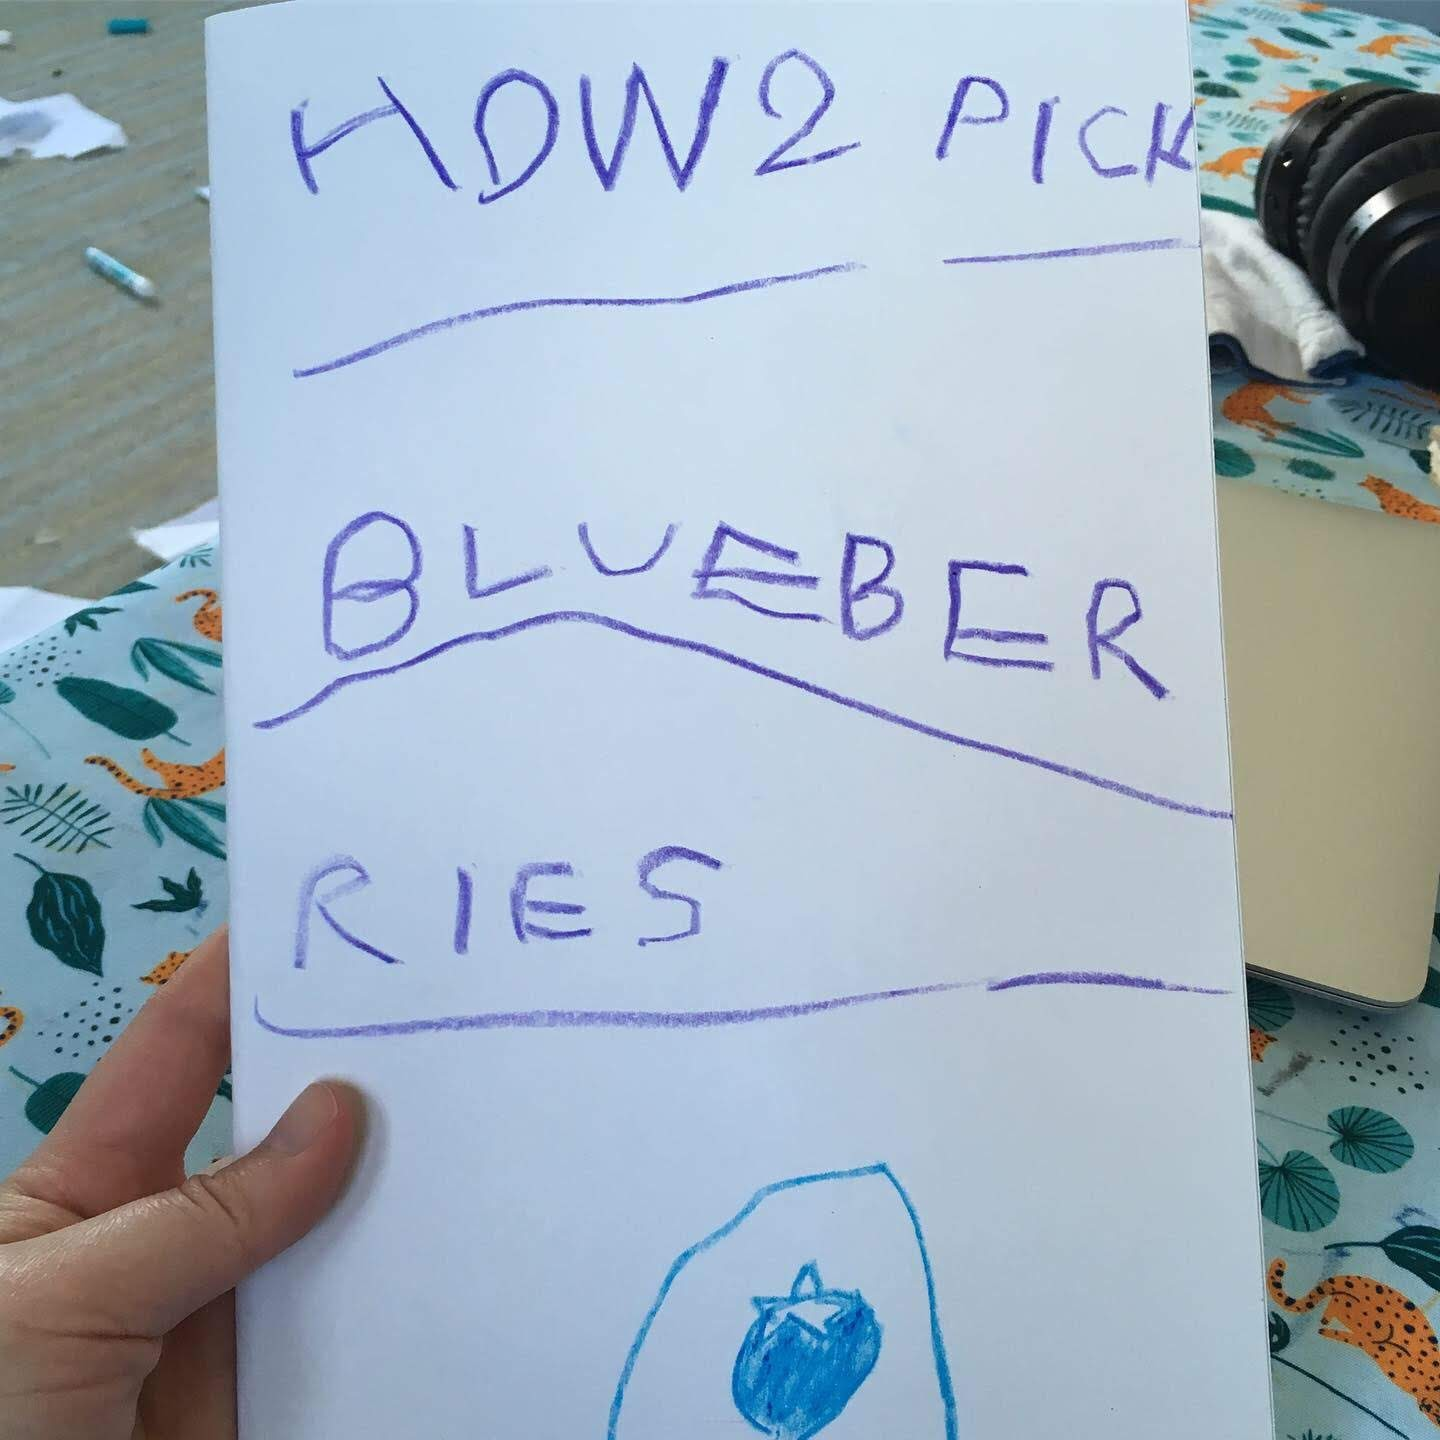 A child's drawing that says HOW2 PICK BLUEBER RIES